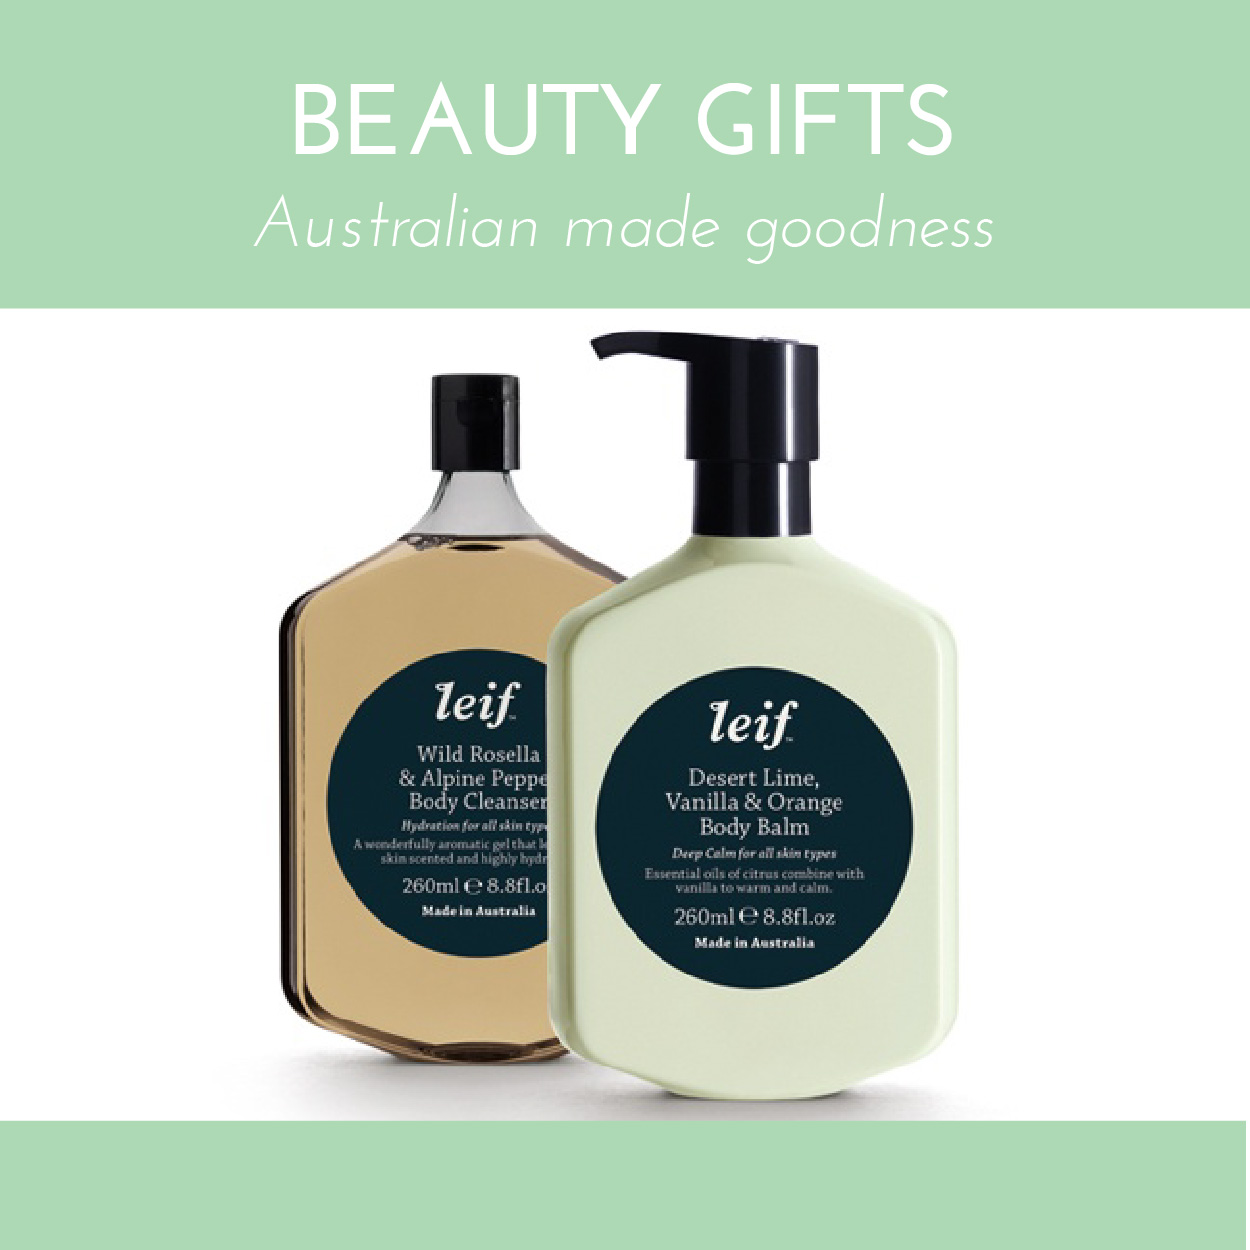 beauty-gifts-01.jpg